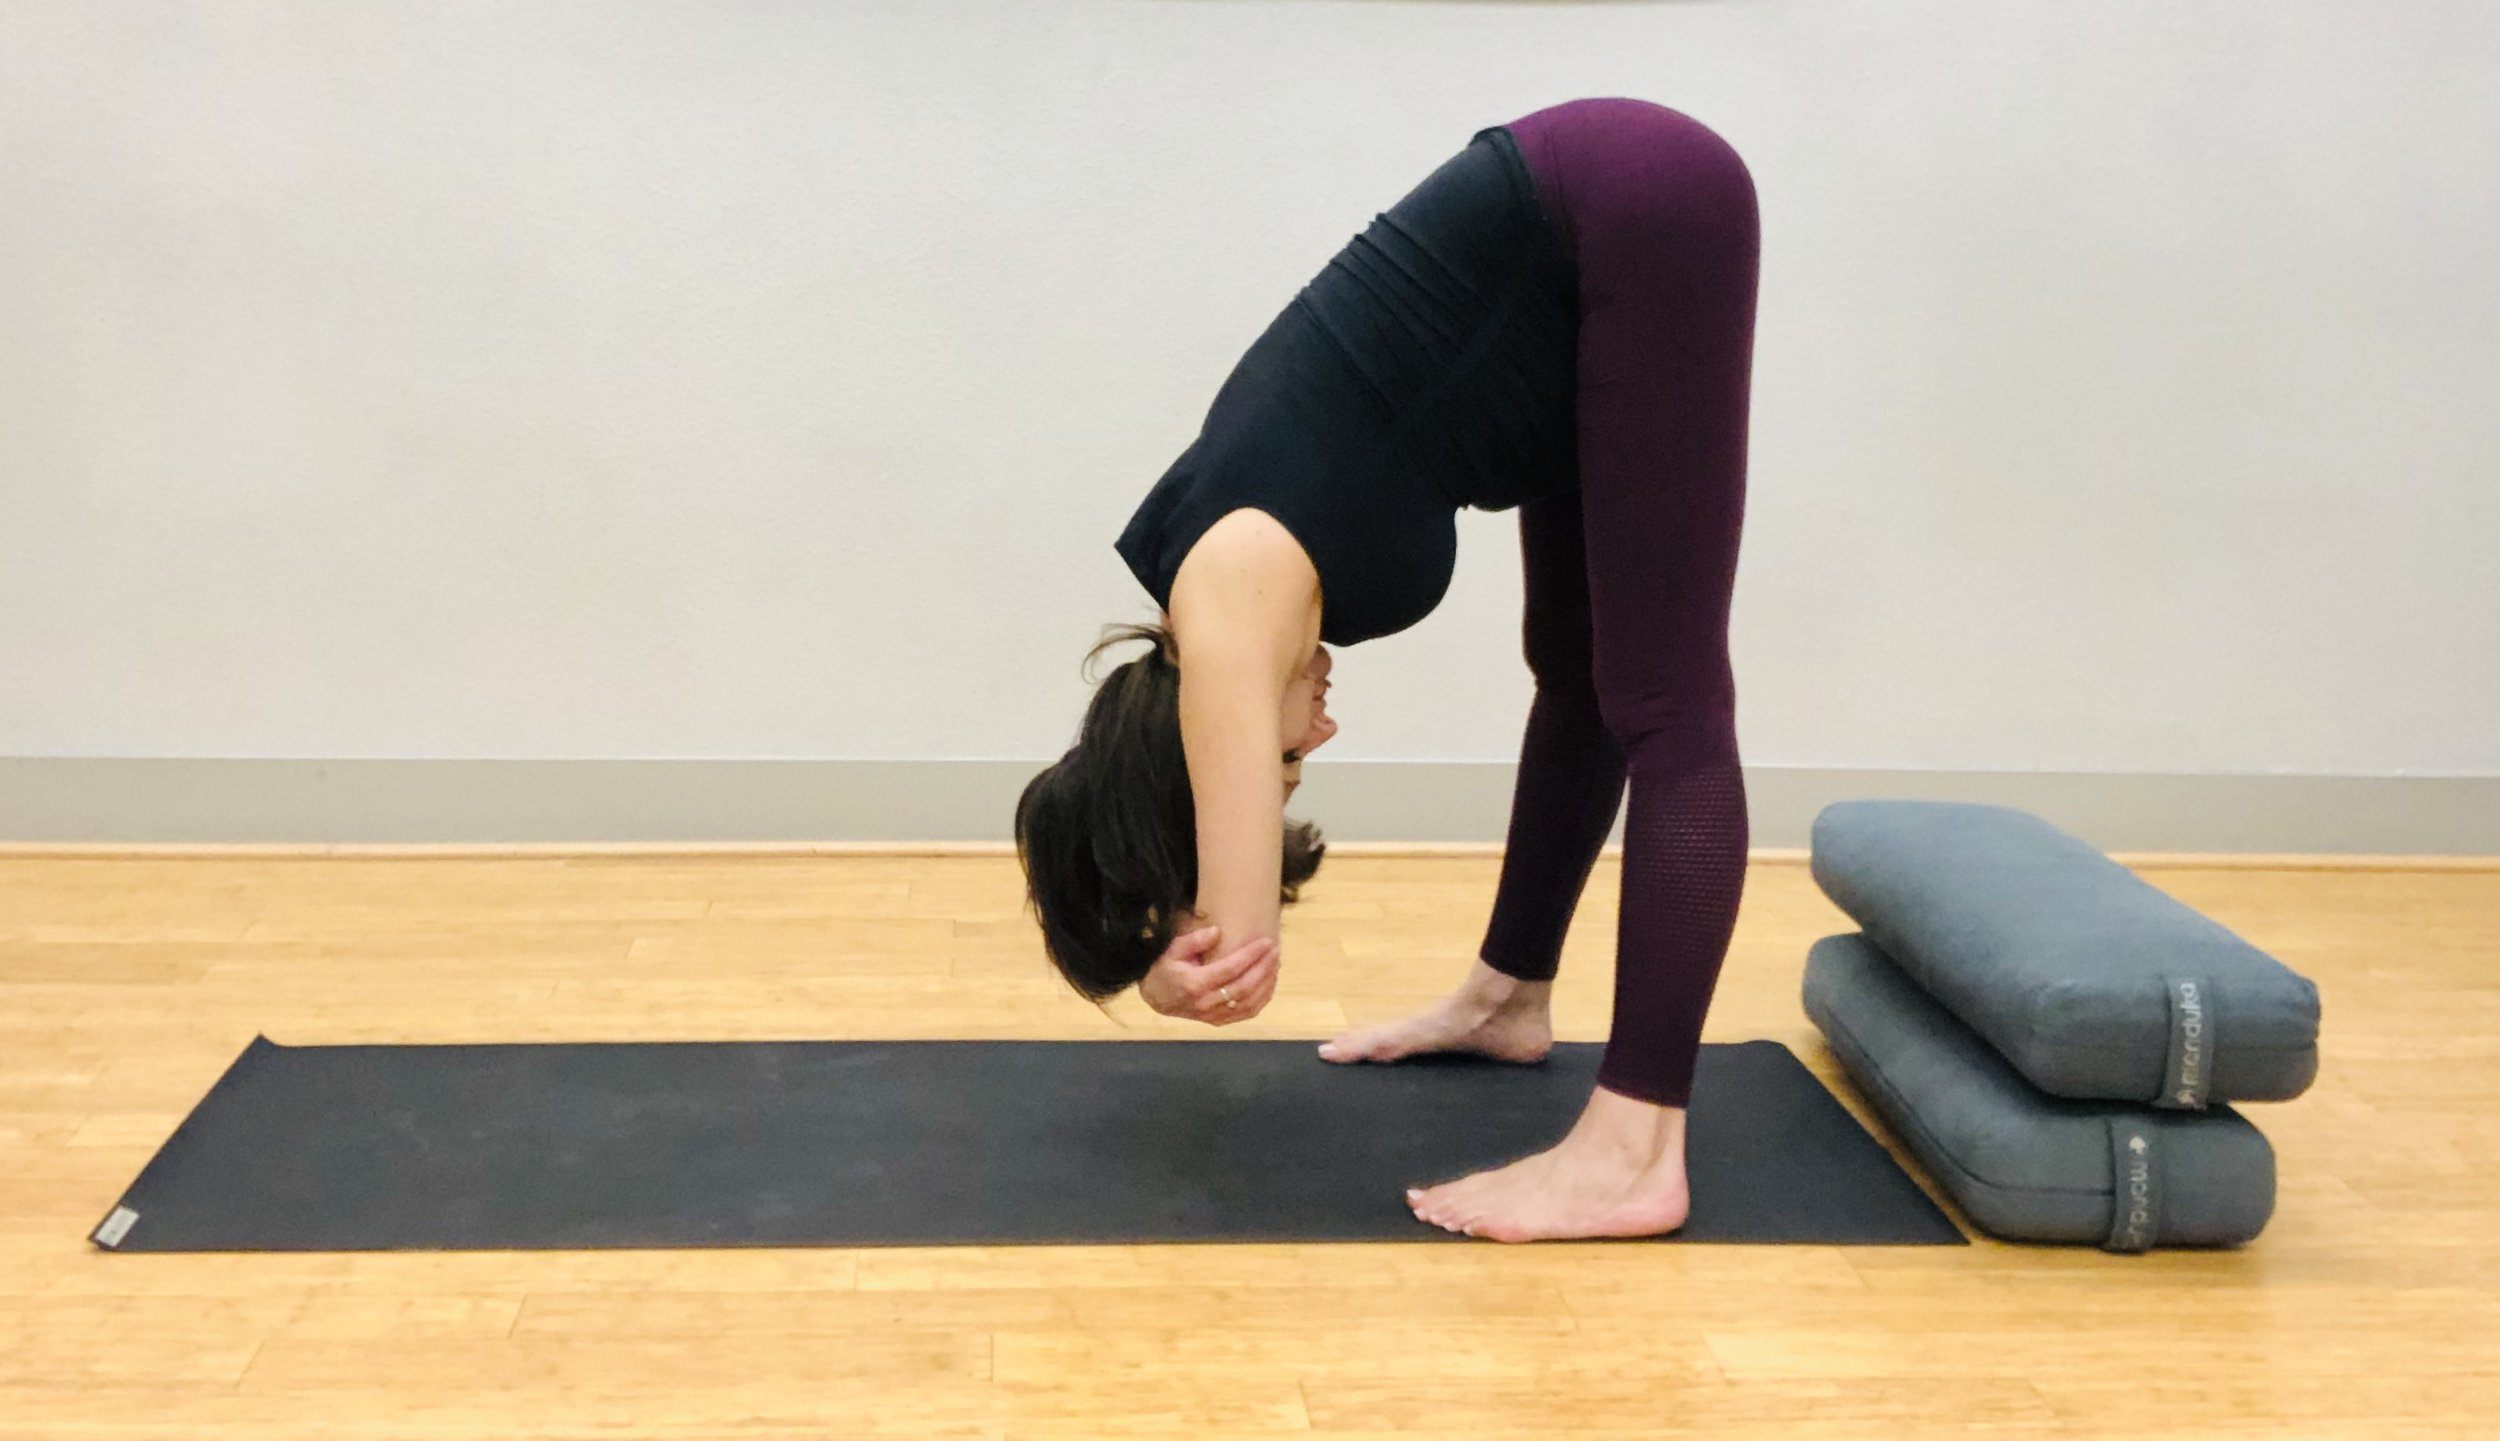 Standing Forward Fold. Keep feet wide to accommodate belly. Options include leaving hands on floor or grabbing elbows to hang and stretch neck and spine.